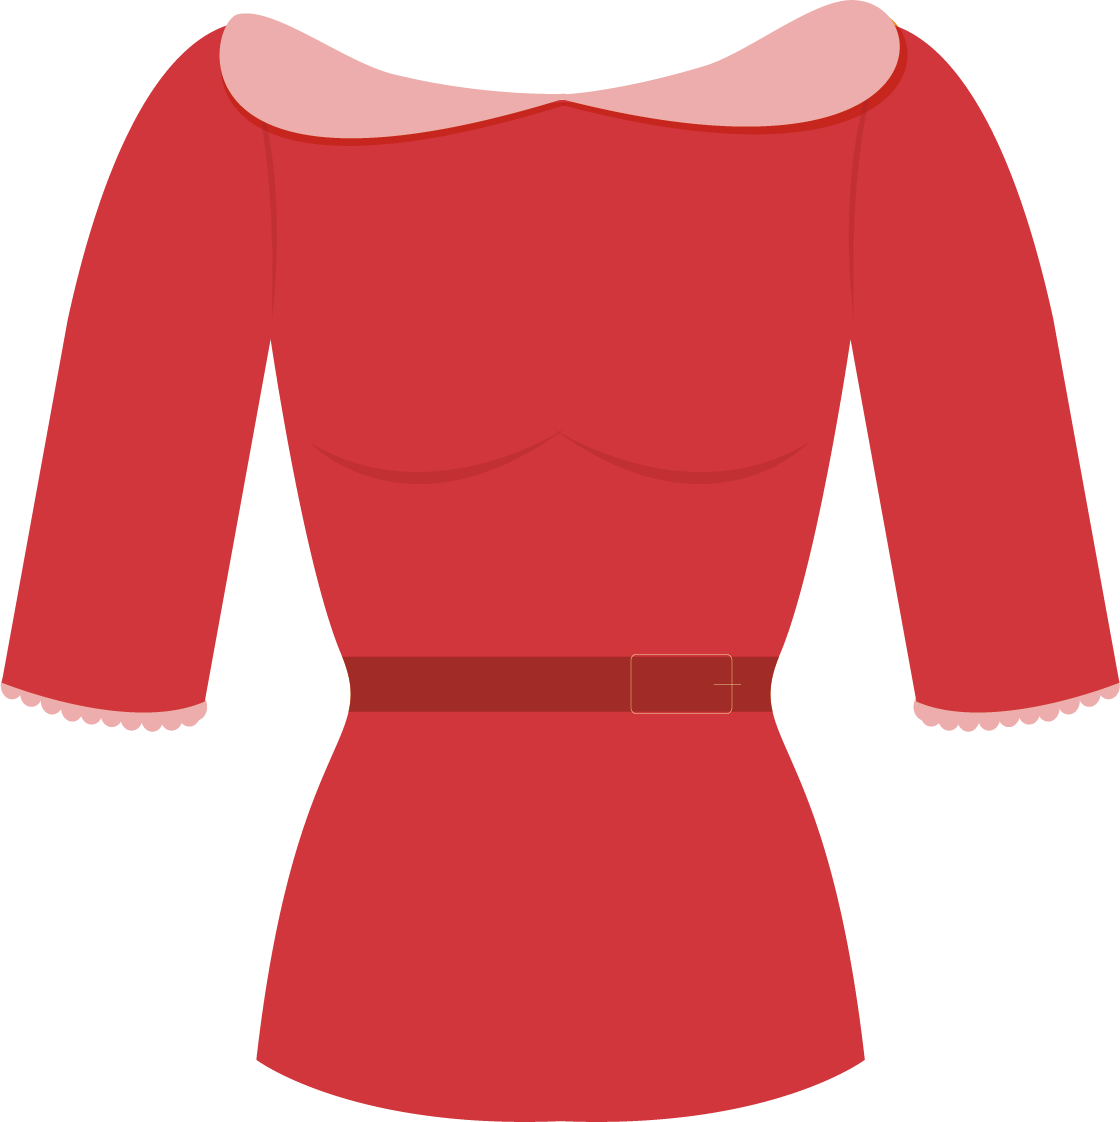 banner royalty free library vector clothing blouse #107583688